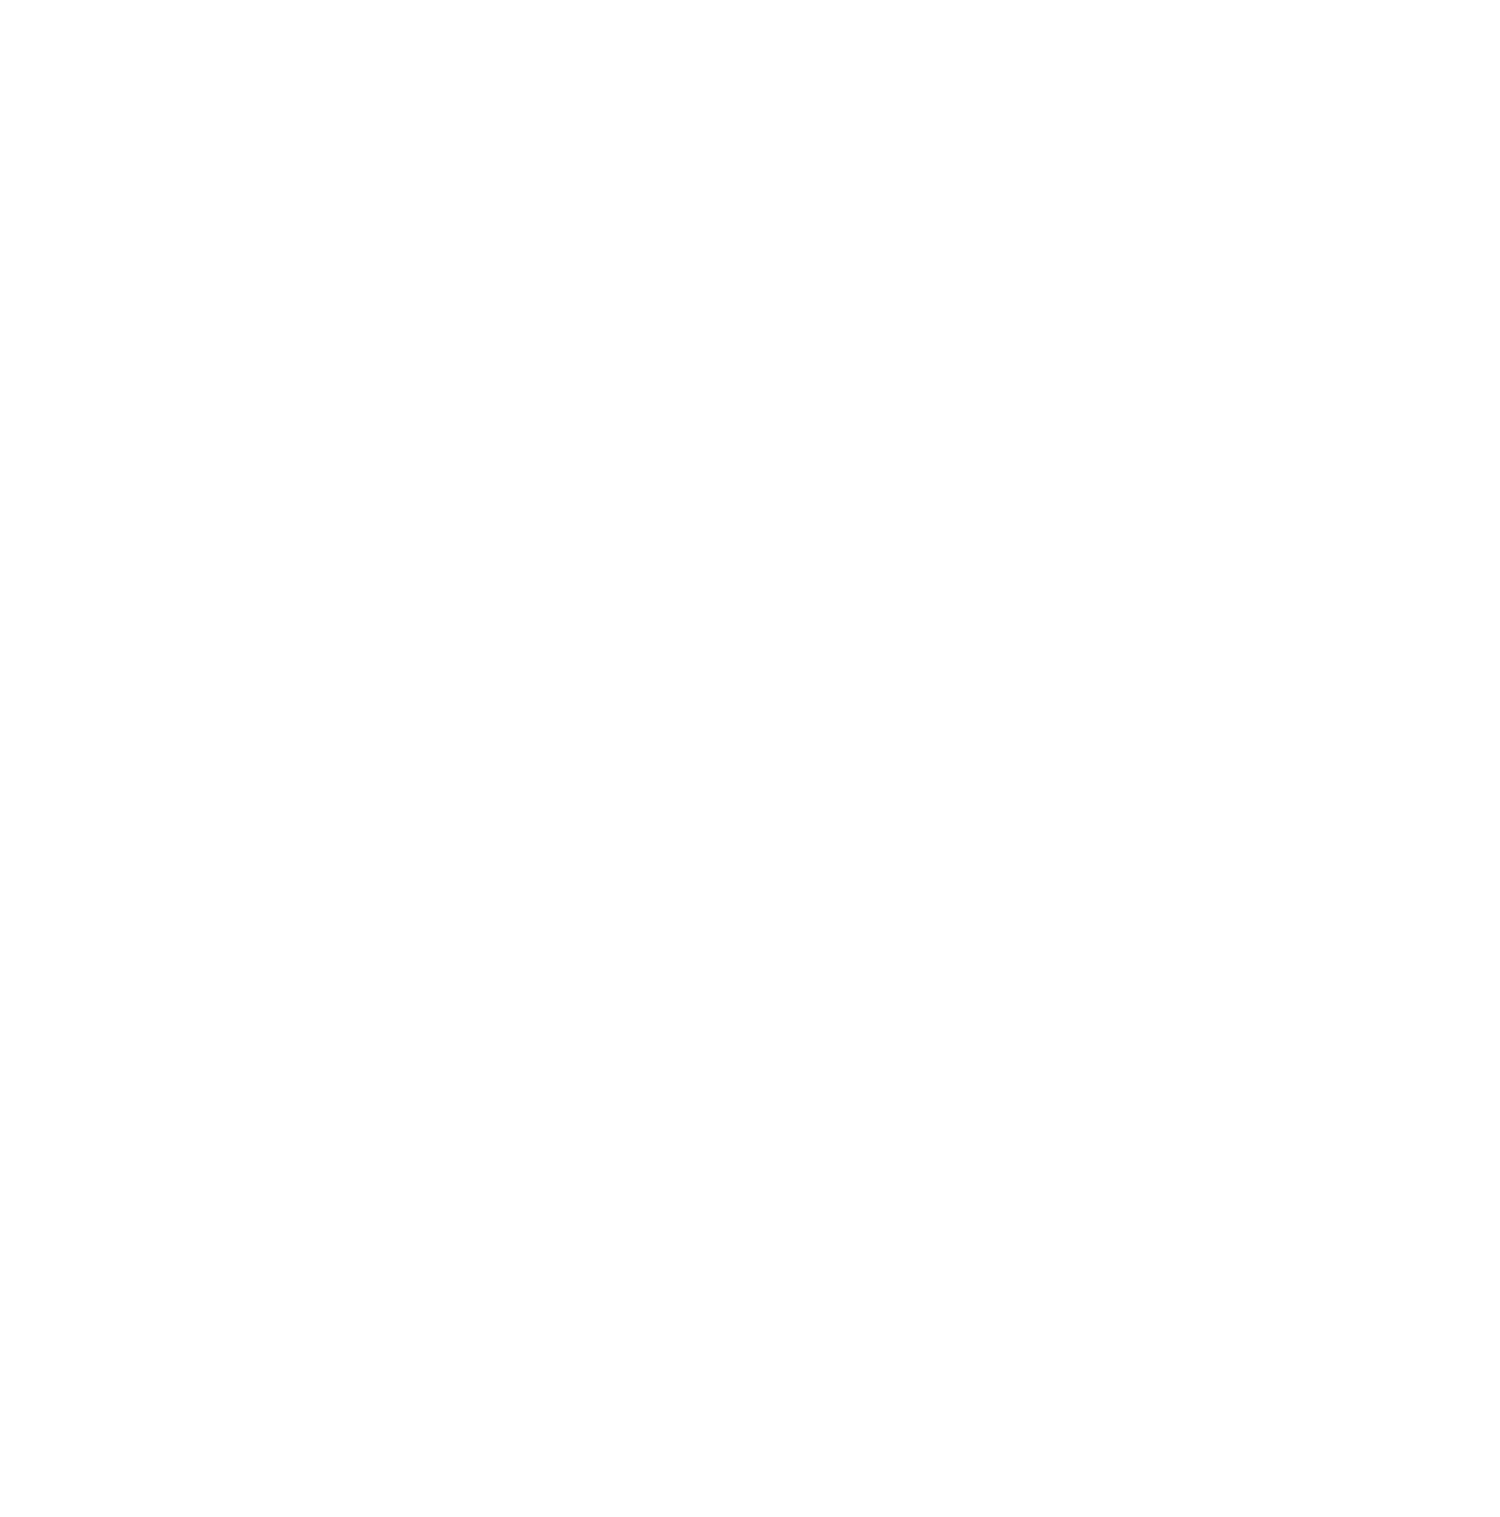 MT+NYC Collaborative